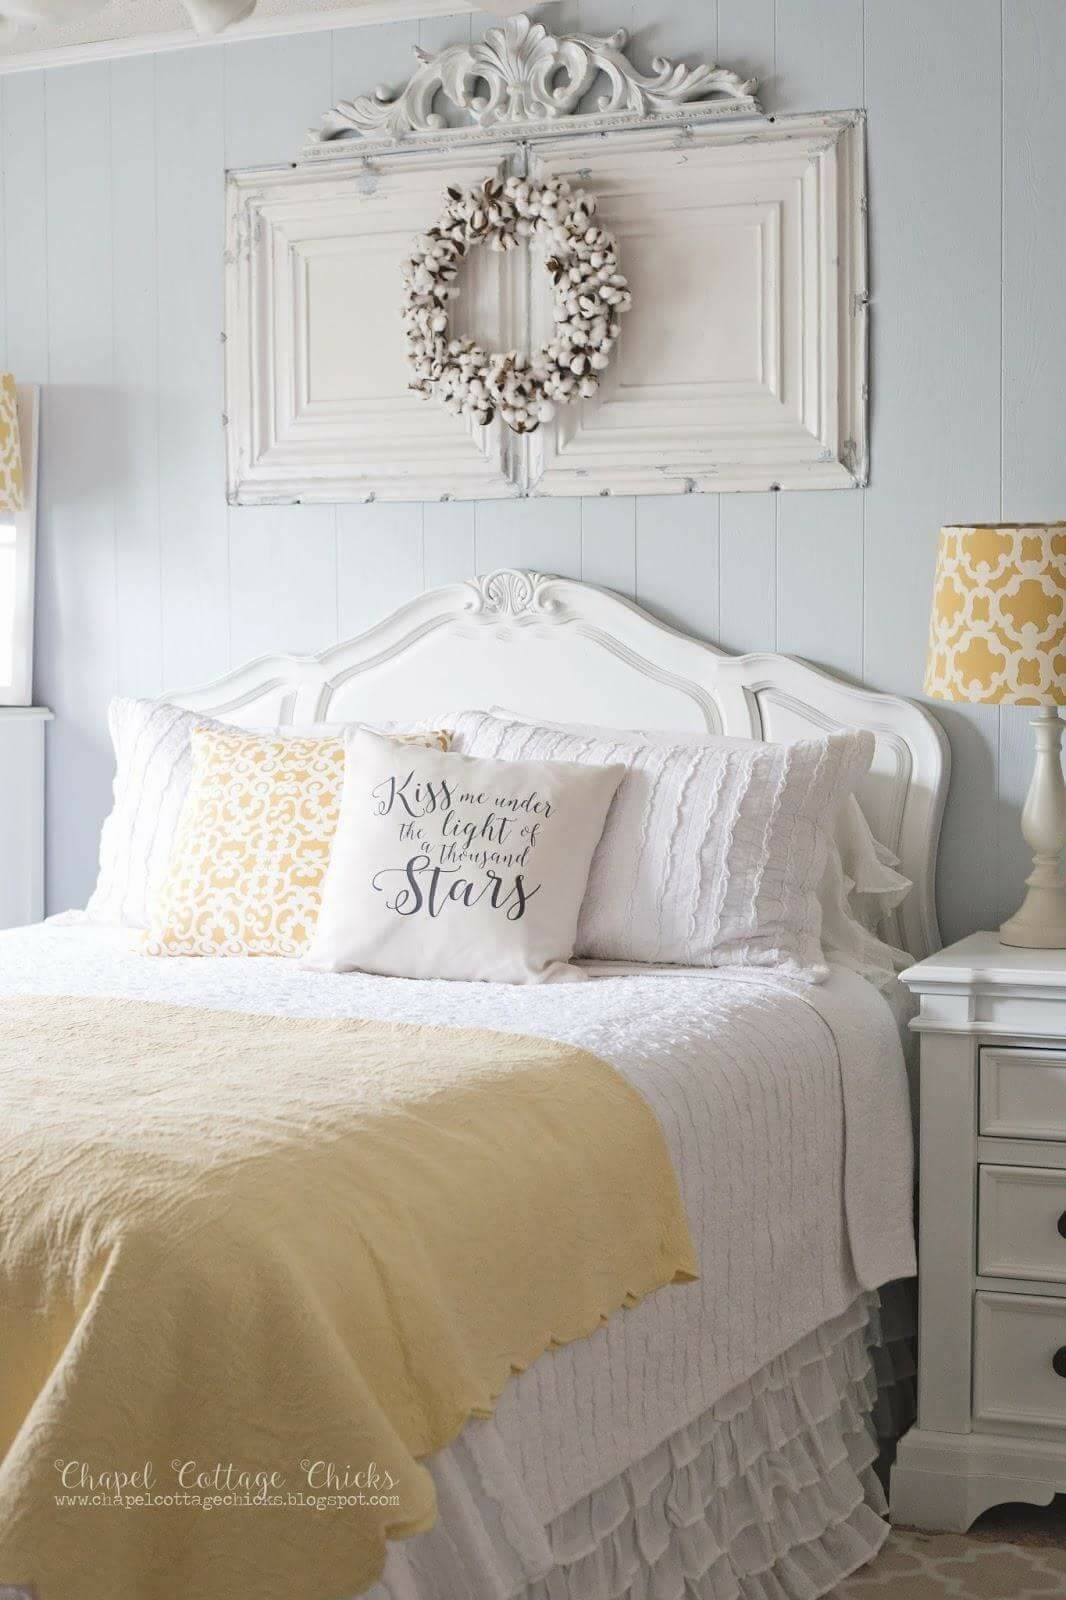 14 Best Rustic Chic Bedroom Decor And Design Ideas For